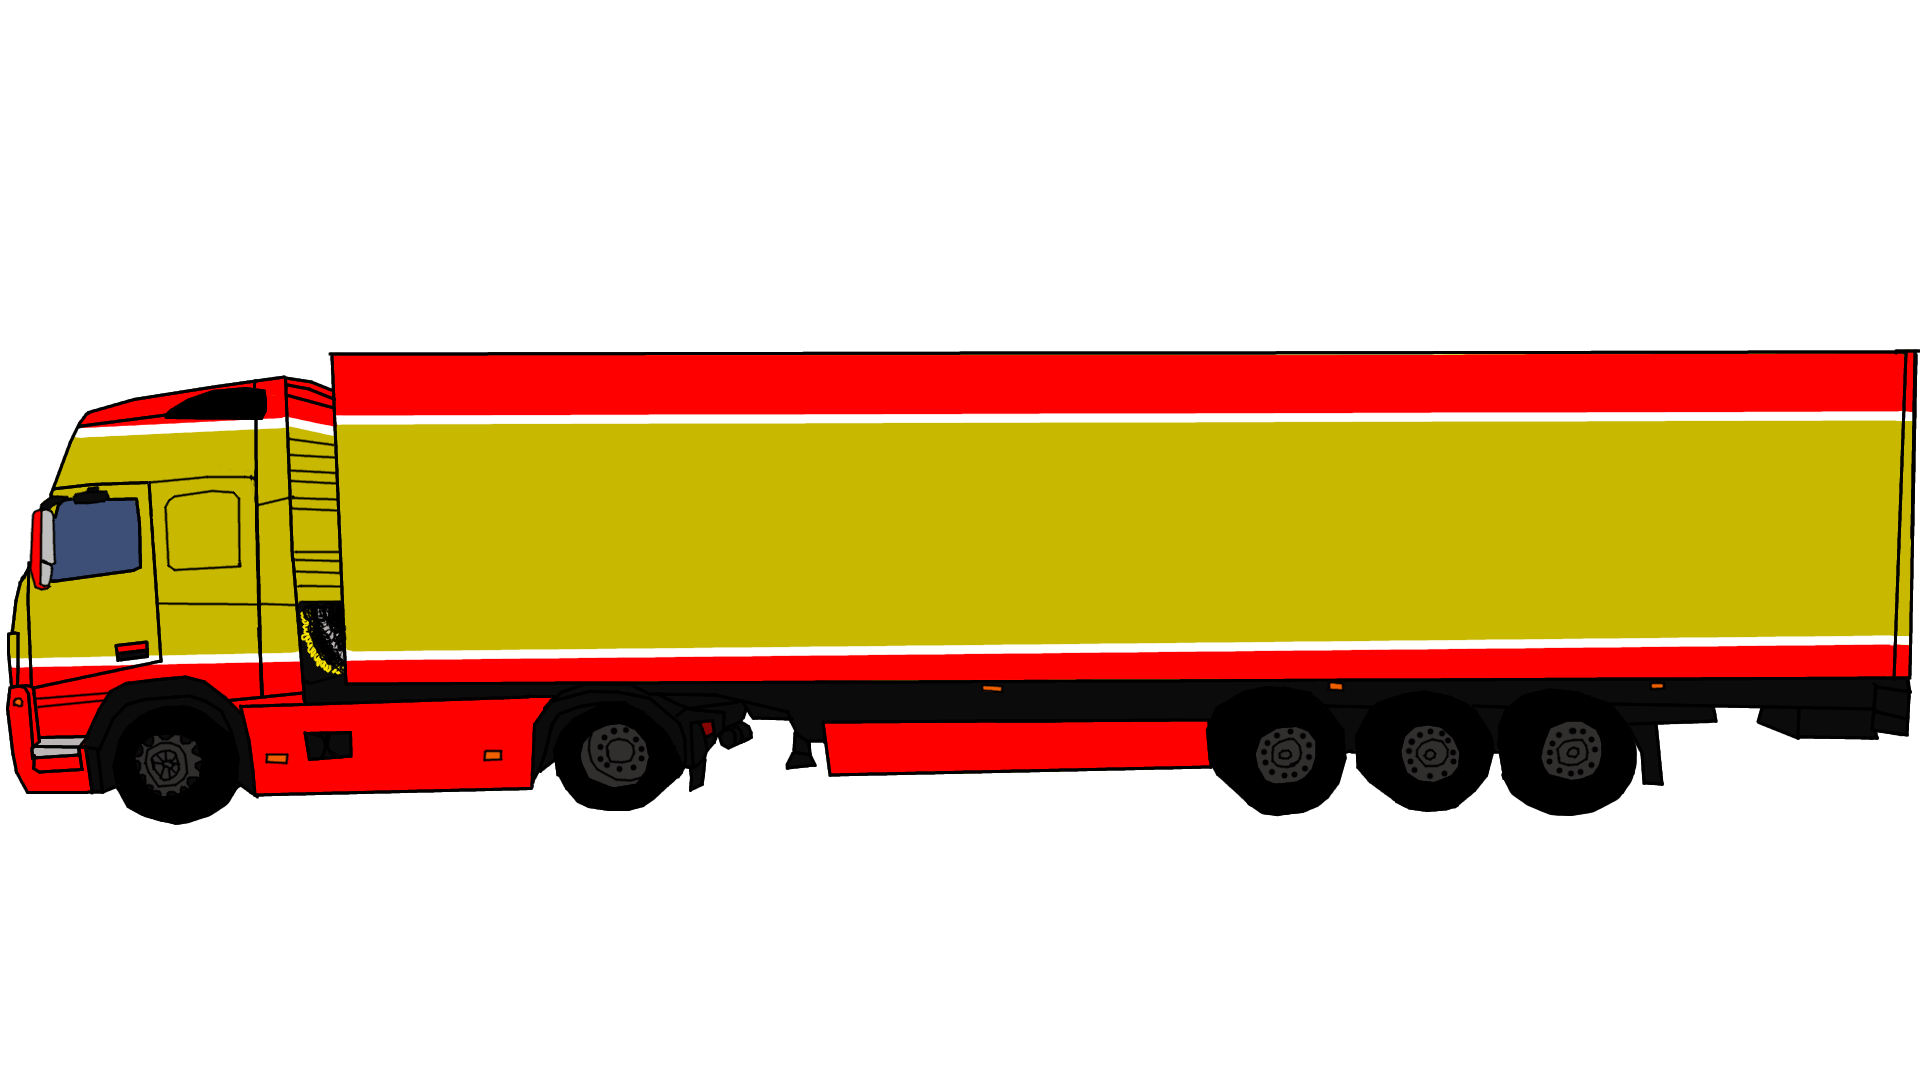 Peterbilt at getdrawings com. Clipart road side view